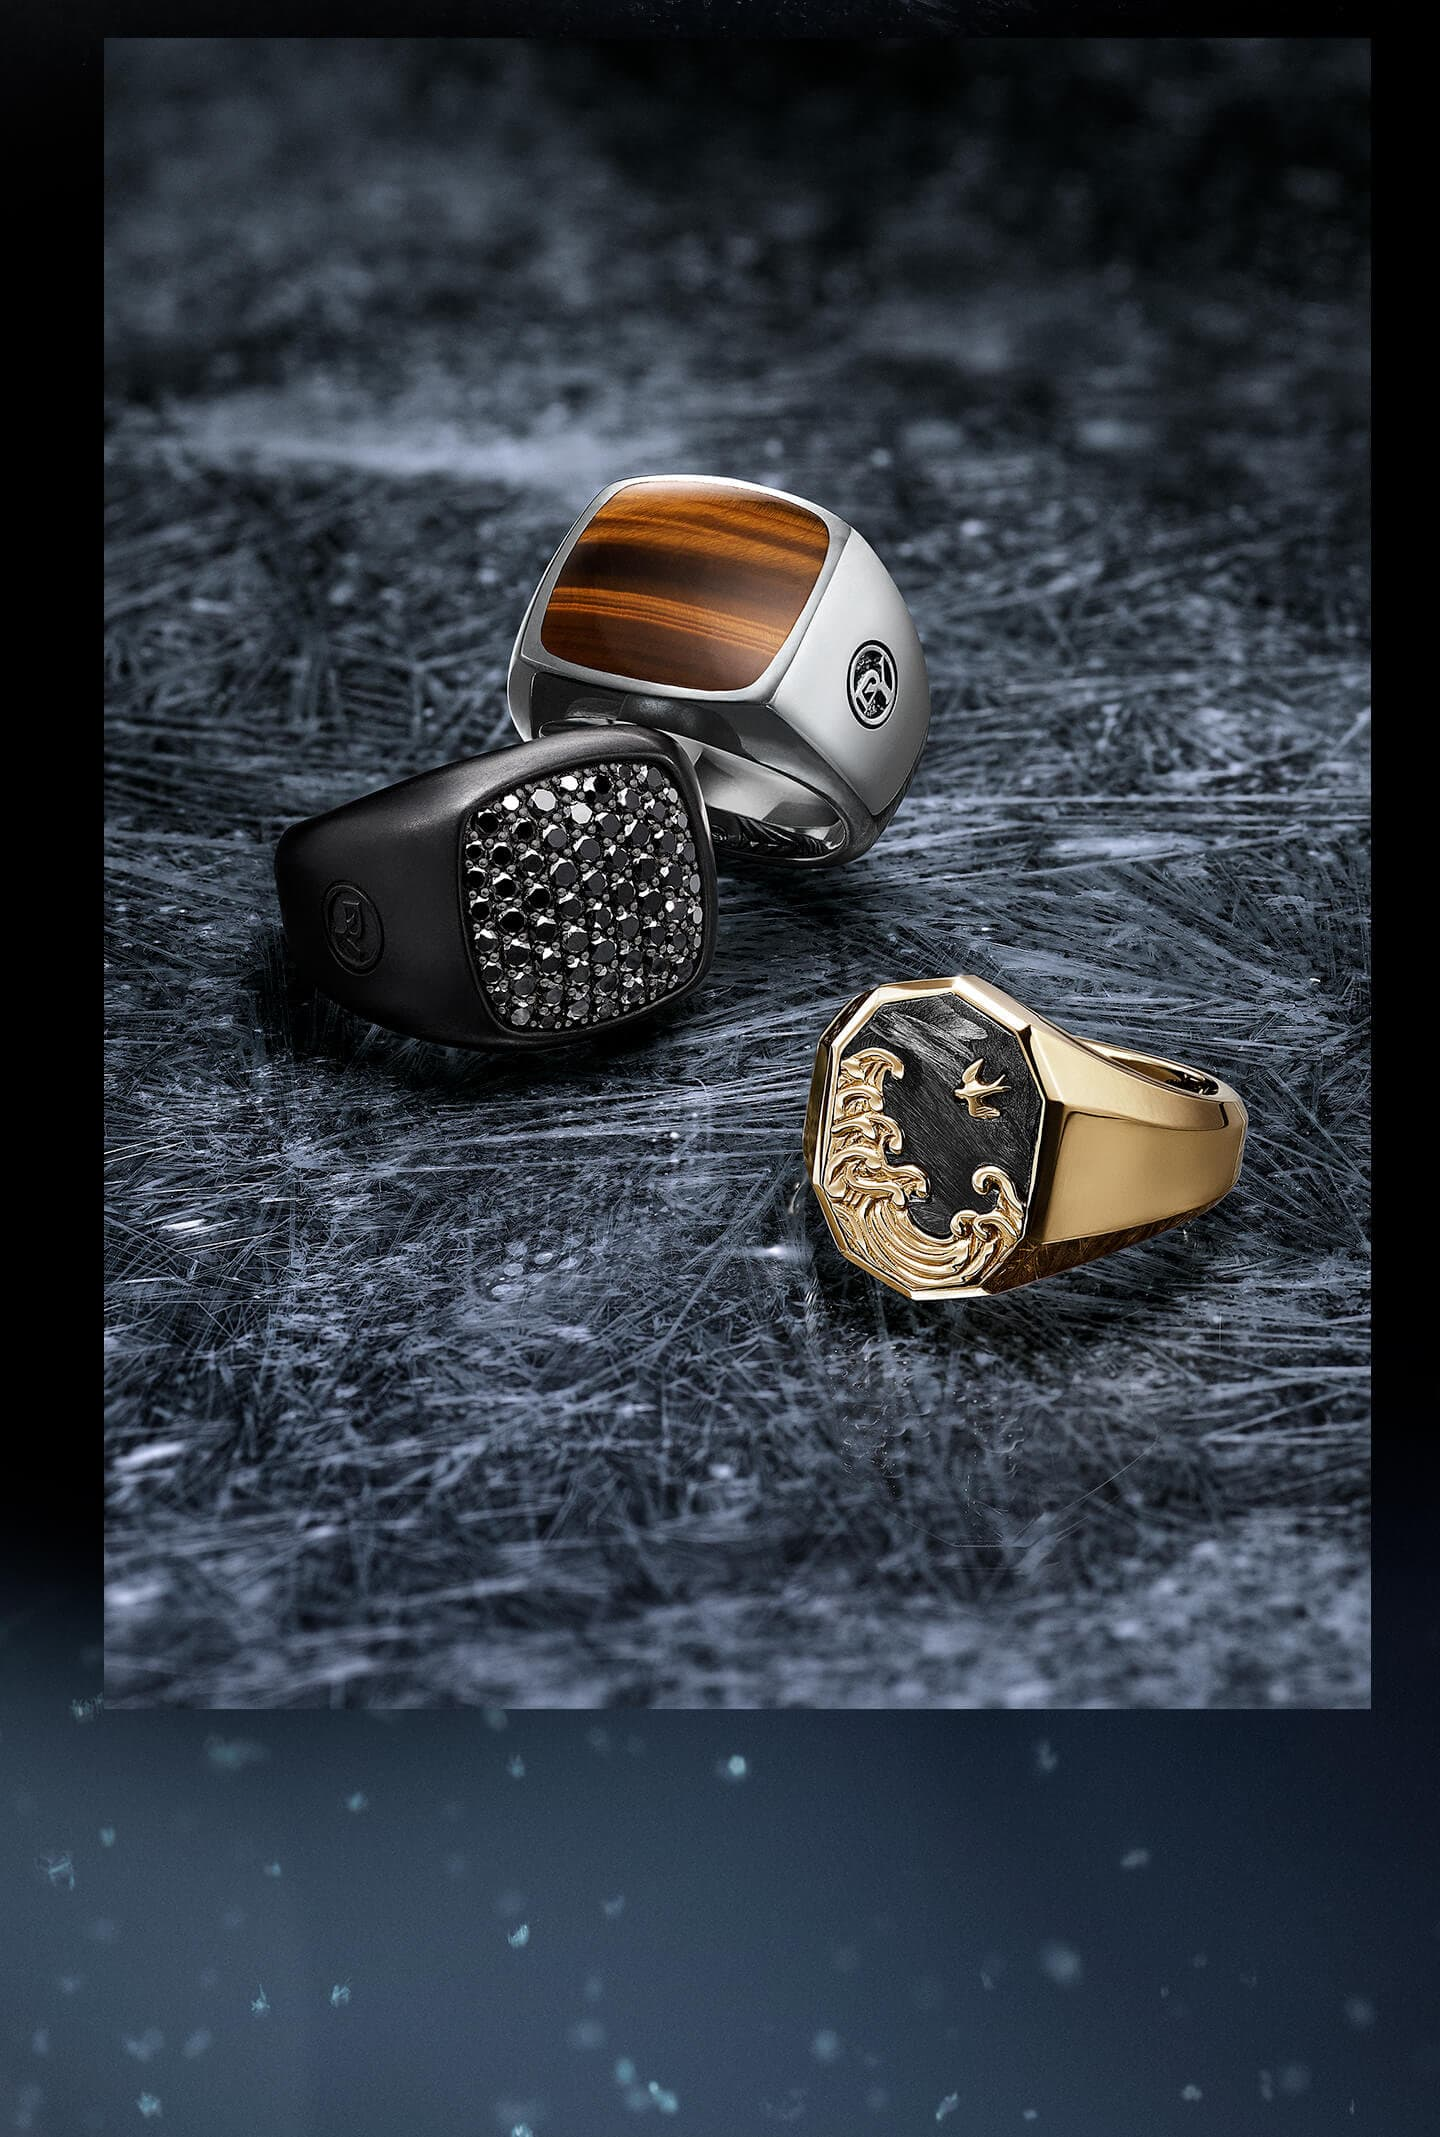 A color photo shows 3 David Yurman men's signet rings from the Exotic Stone, Pavé and Waves collections arranged on top of a snow-dusted dark, scratched, icy surface. The Exotic Stone ring is crafted from sterling silver with tiger's eye, and is leaning up and against the Pavé ring, which is crafted from black titanium with pavé black diamonds. The Waves ring situated in front and slightly to the right of the other rings, facing them, and is crafted from 18K yellow gold with forged carbon.